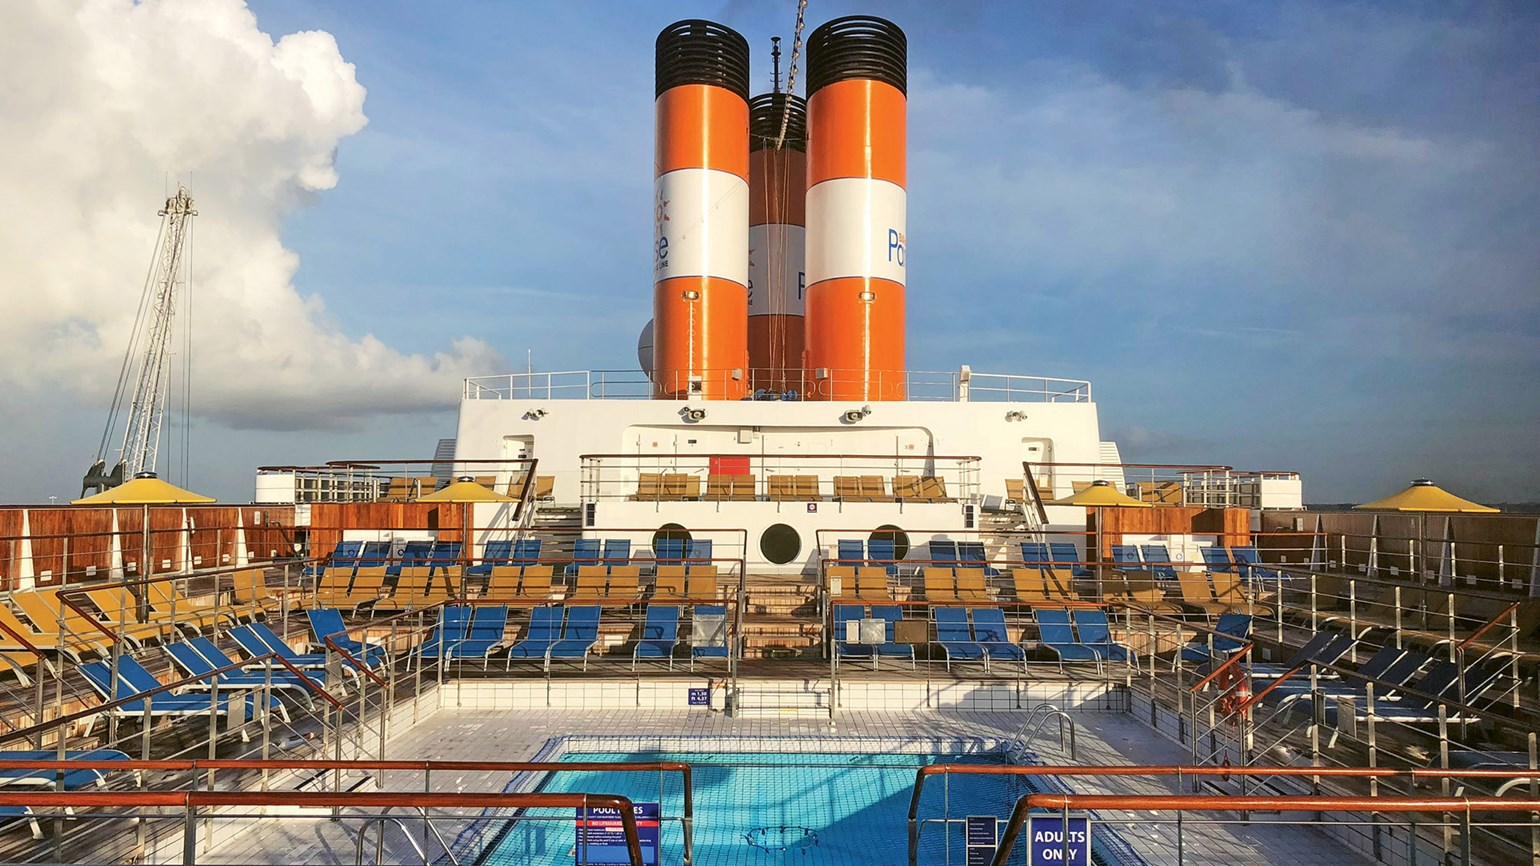 Short Bahamas Paradise cruise long on value: Travel Weekly (travelweekly.com)